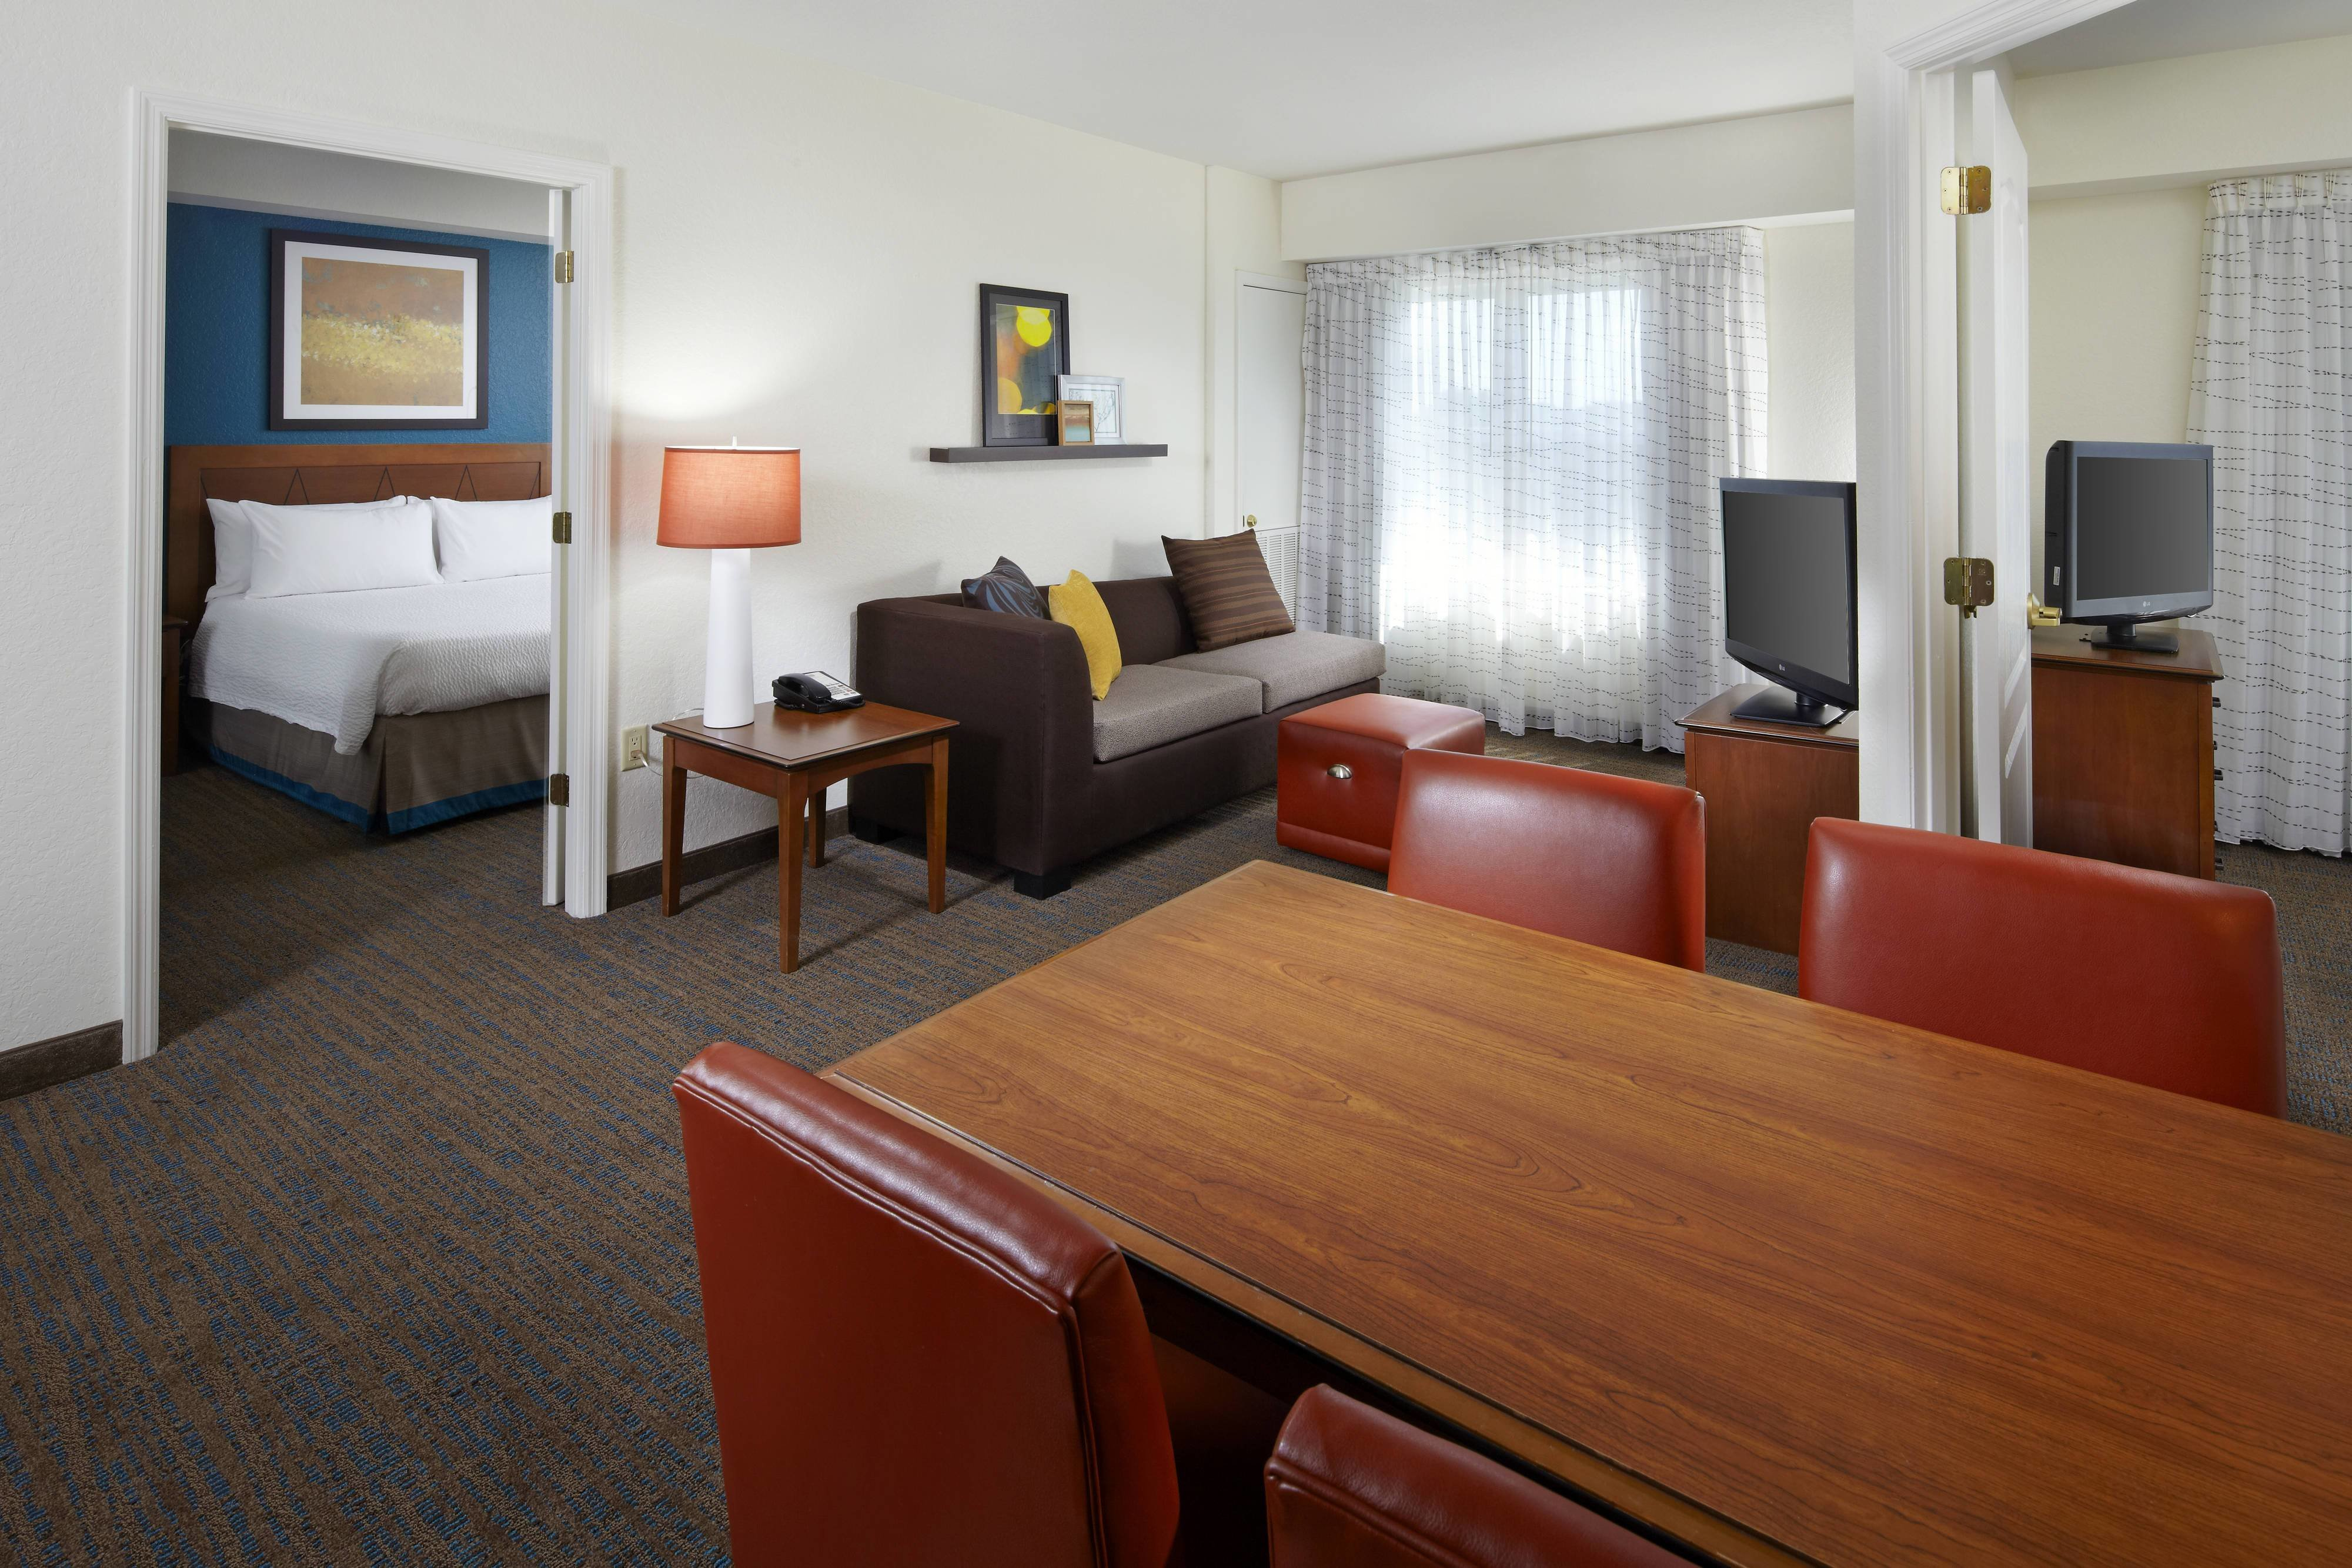 Best Residence Inn Tampa Oldsmar Hotel Amenities Hotel Room With Pictures